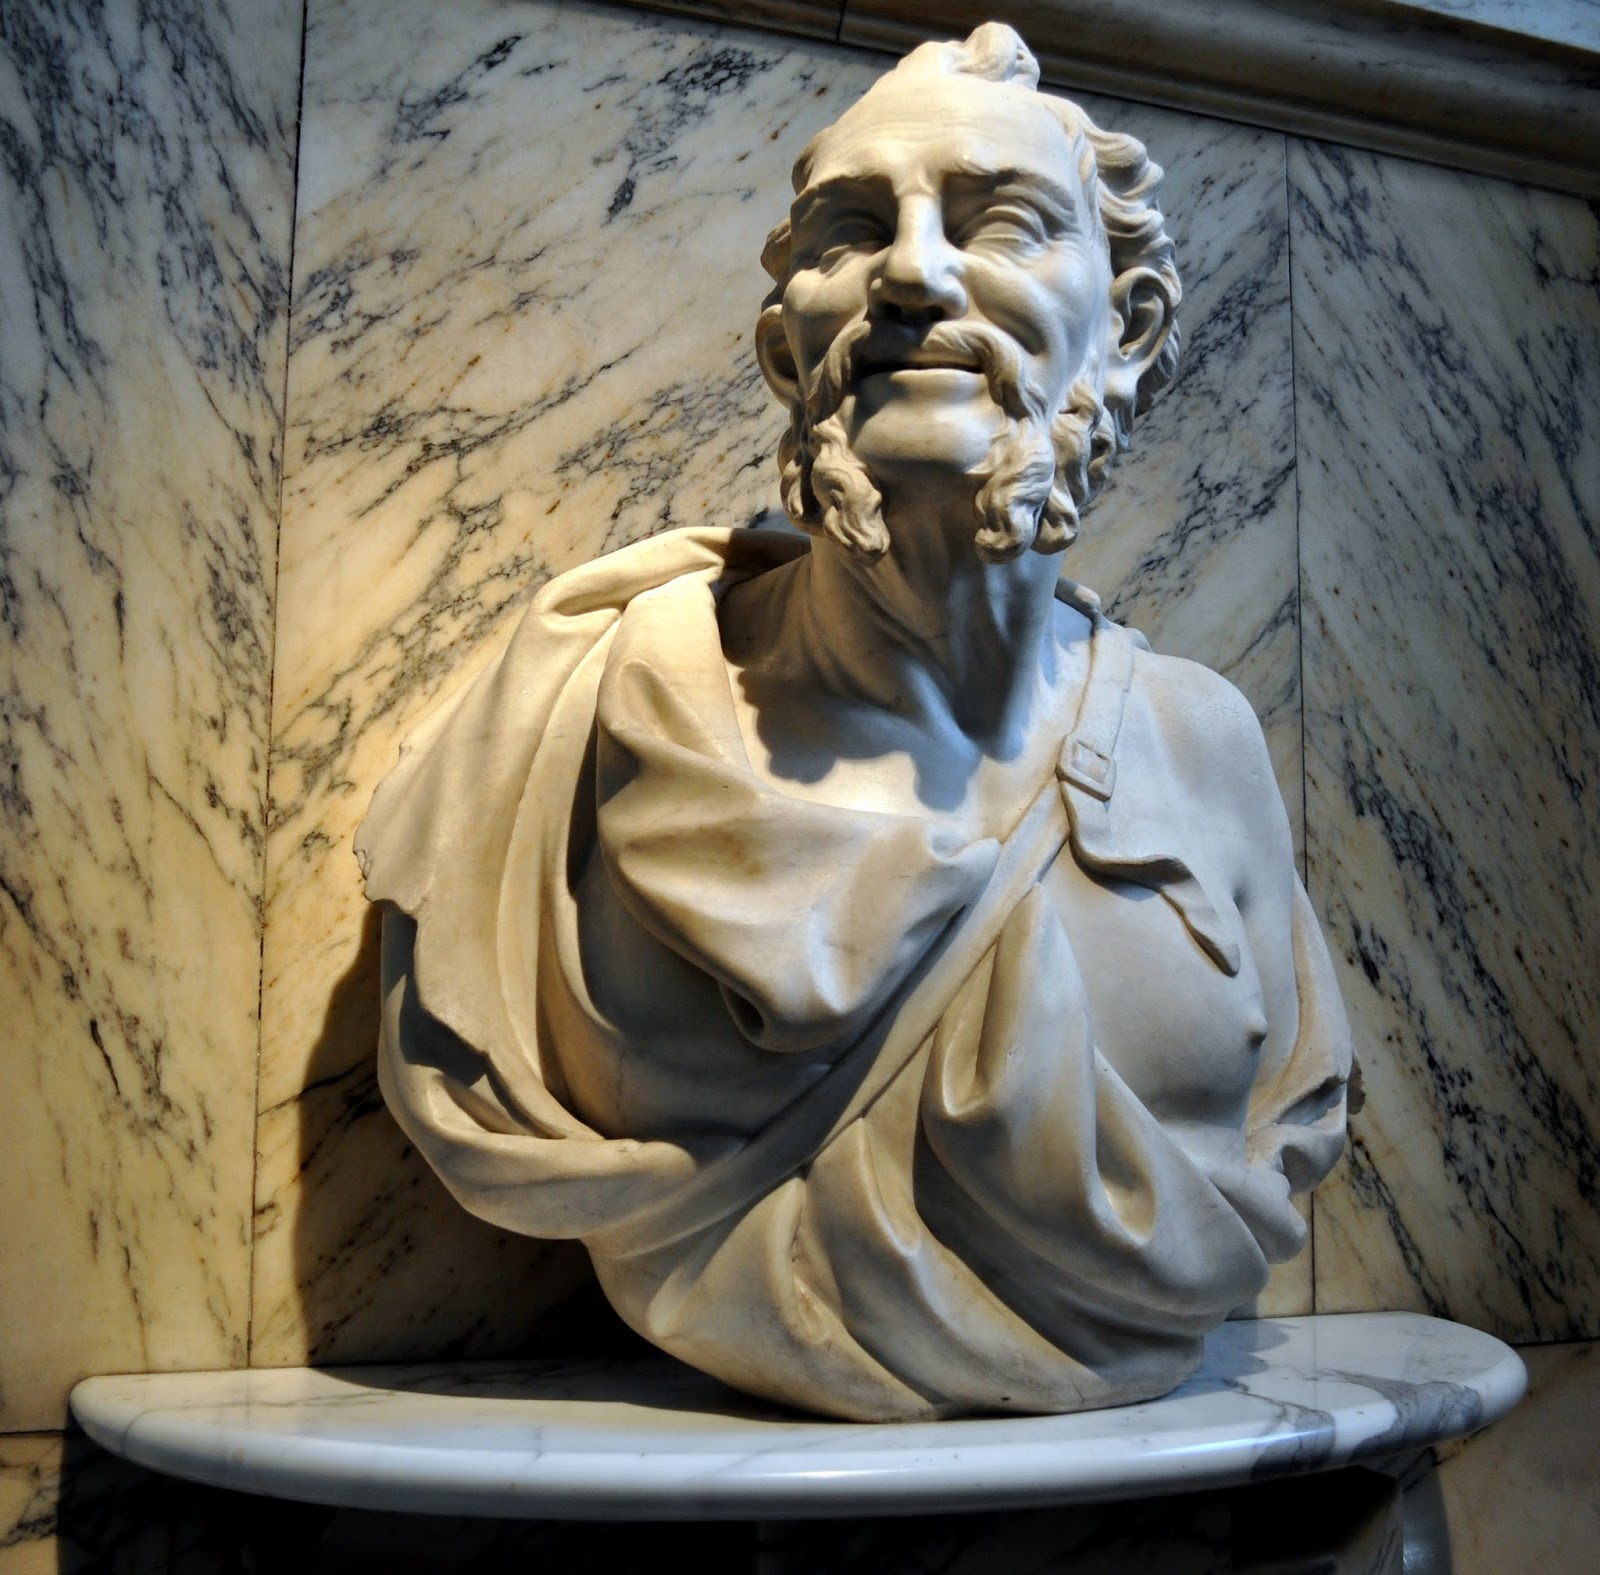 An Italian-made bust of Democritus from the 1700s